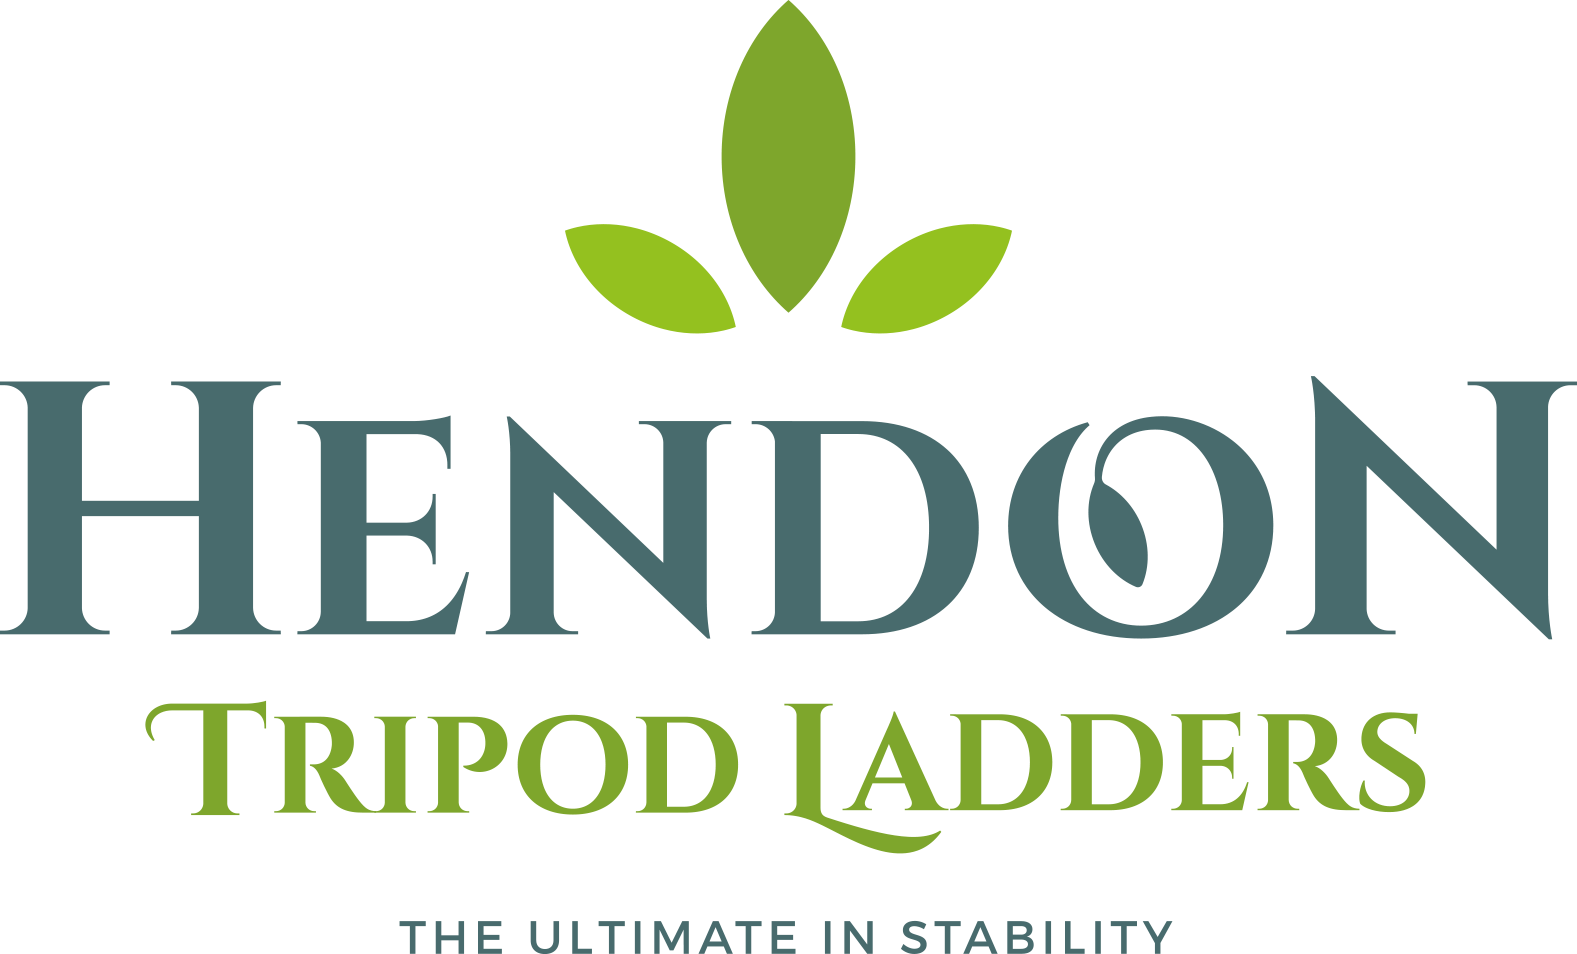 Hendon Tripod Ladders - The Ultimate in Stability Logo